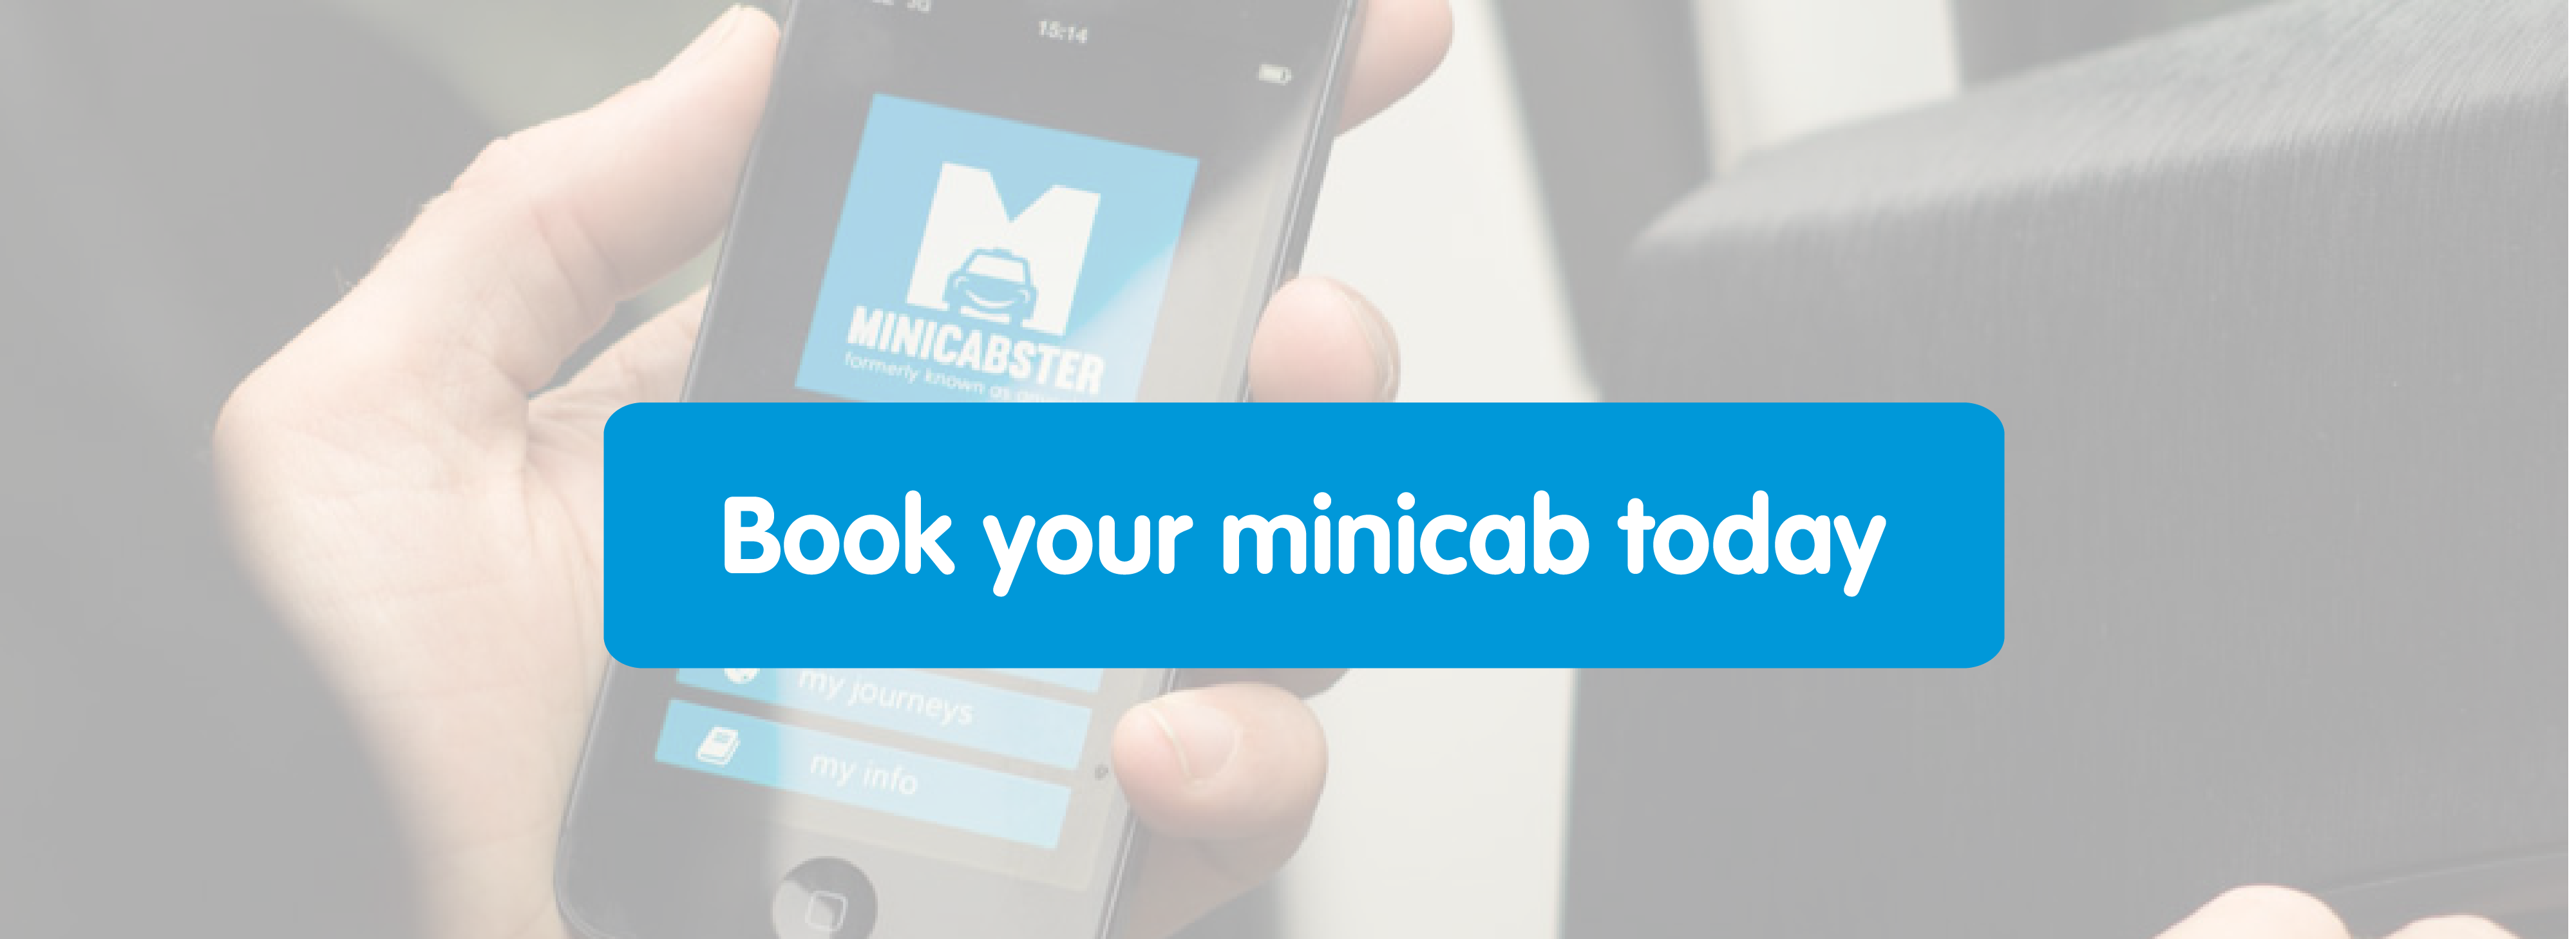 minicabster-review